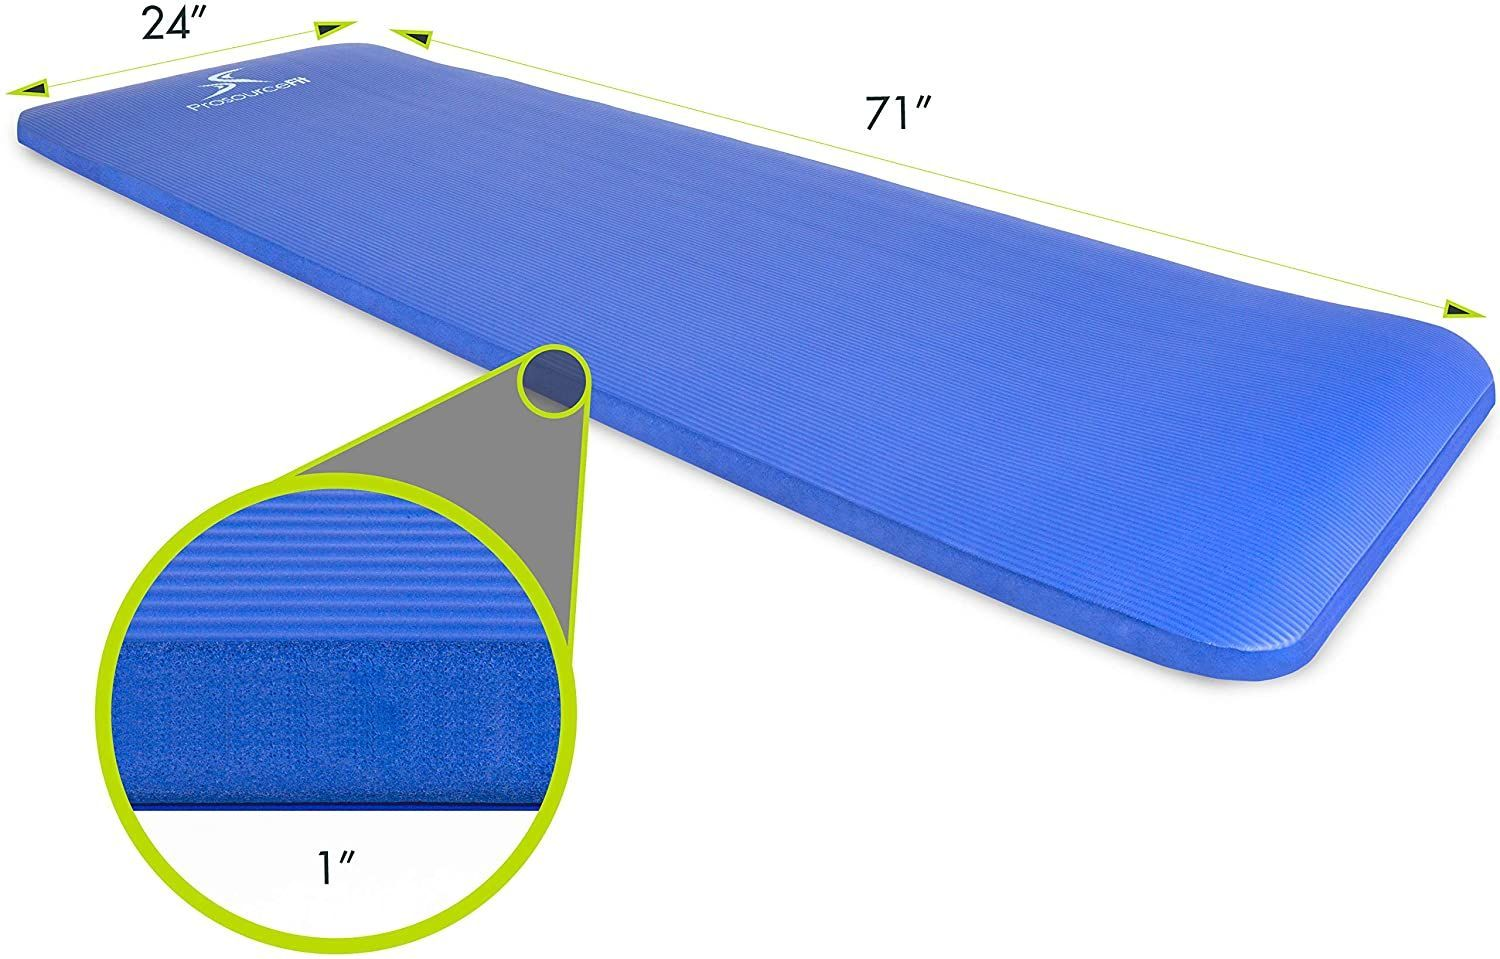 Reduce impact with the Prosource Fit extra thick Yoga and